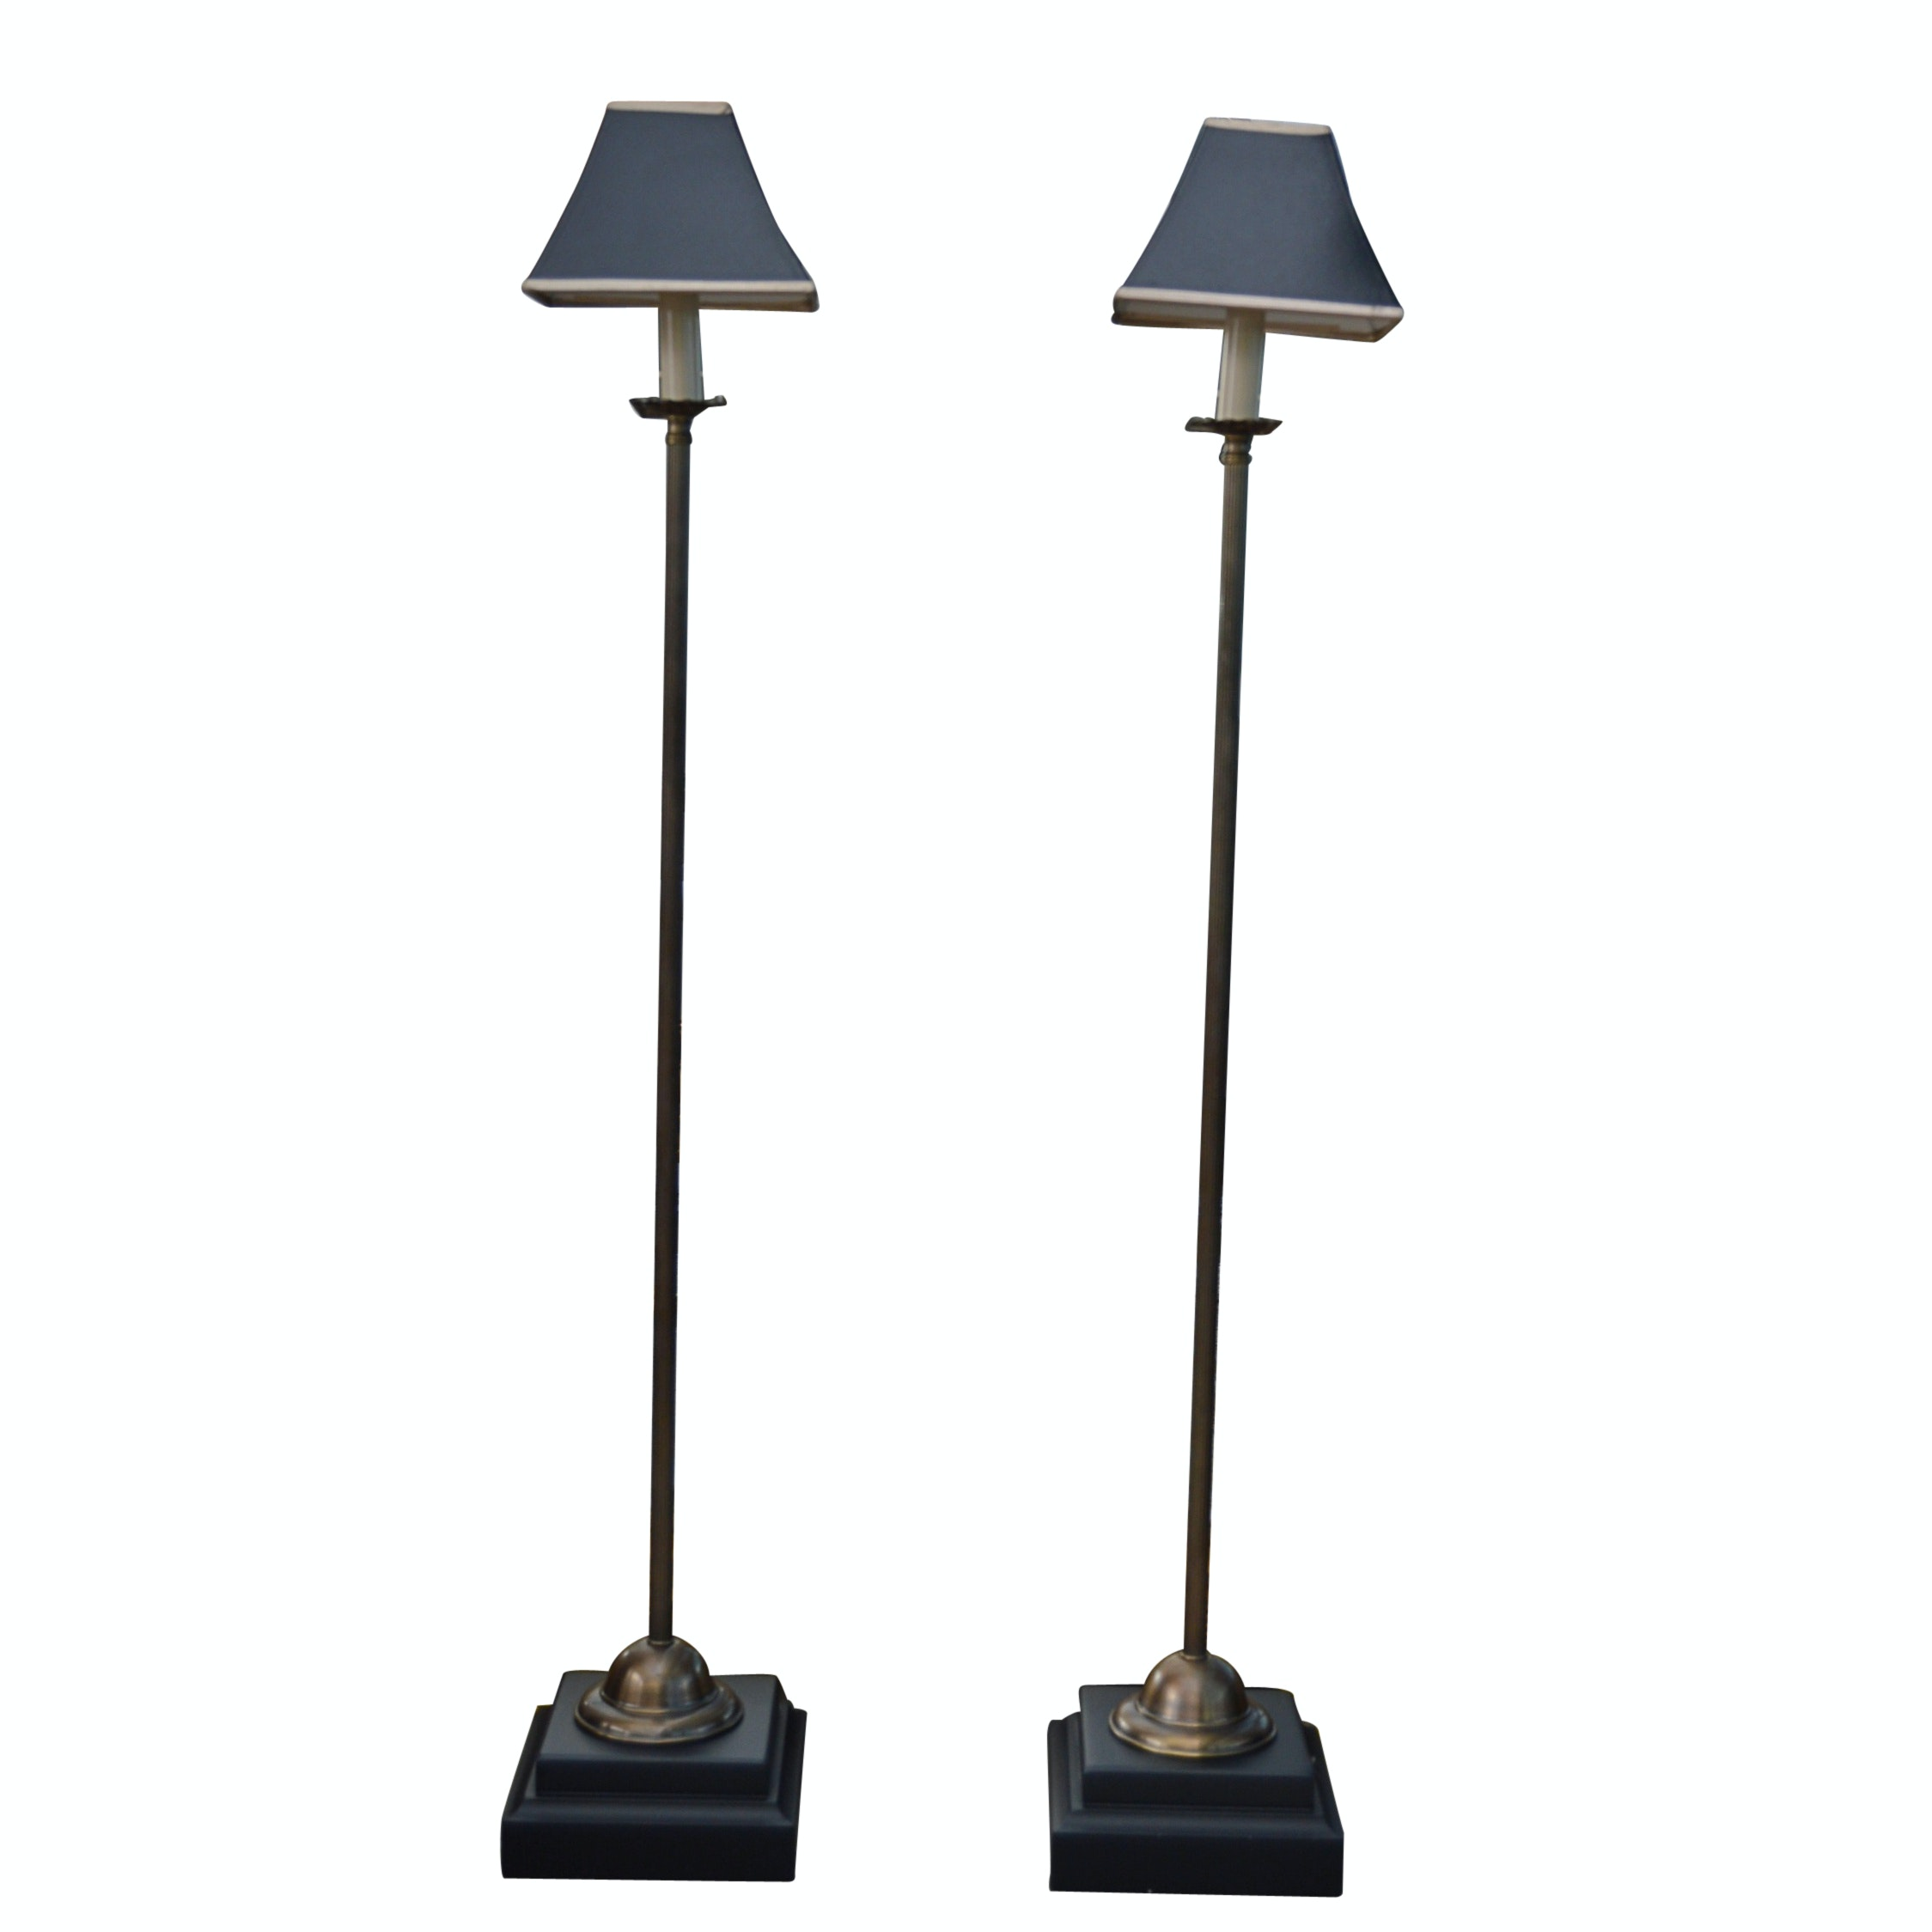 Candlestick Floor Lamps with Shades